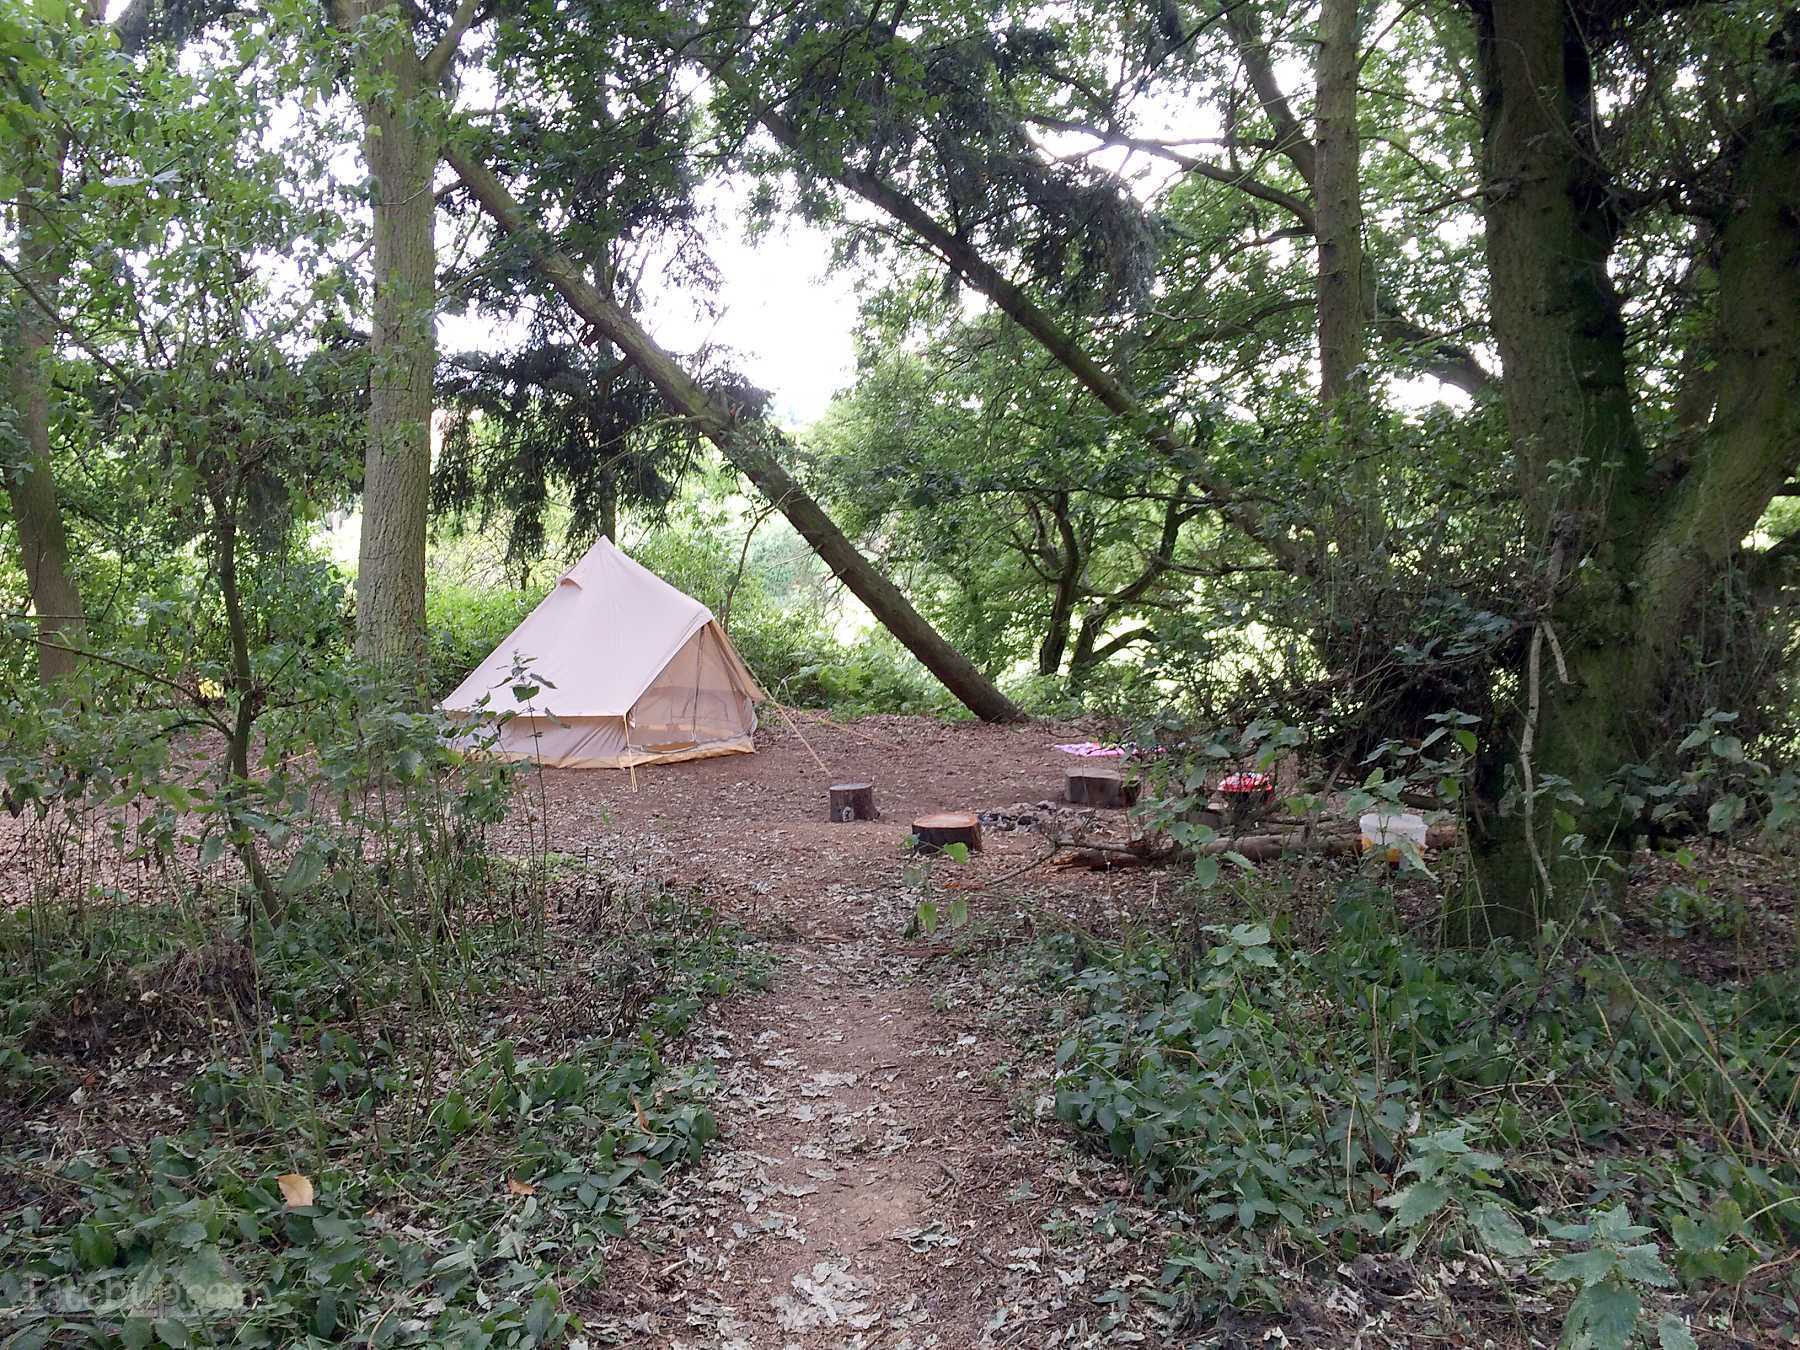 Little Ropers campsite, Suffolk, best campsites near London, 2017